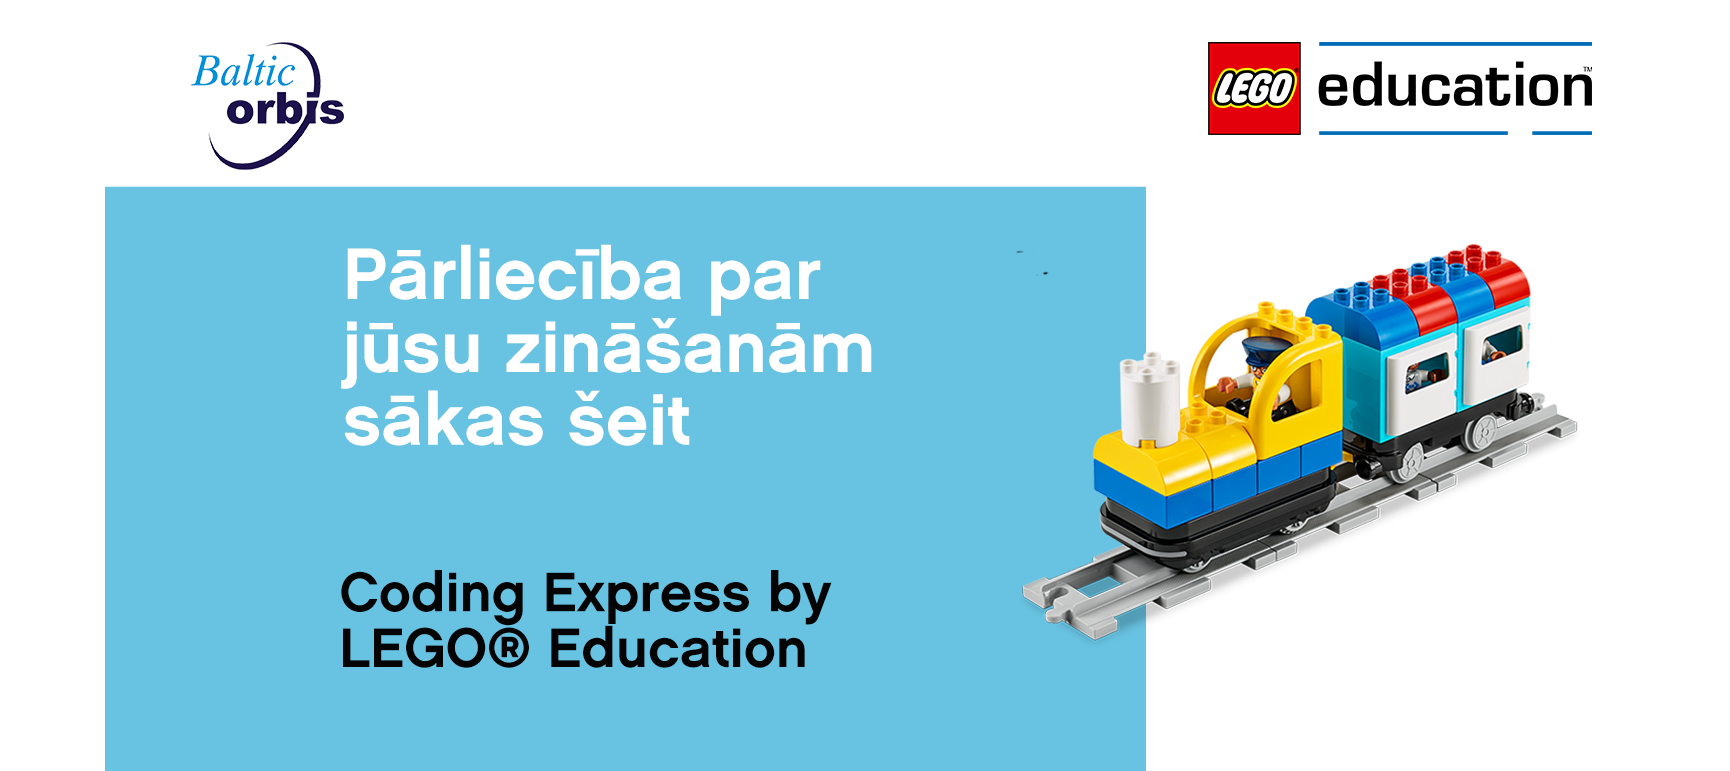 Coding Express by LEGO® Education